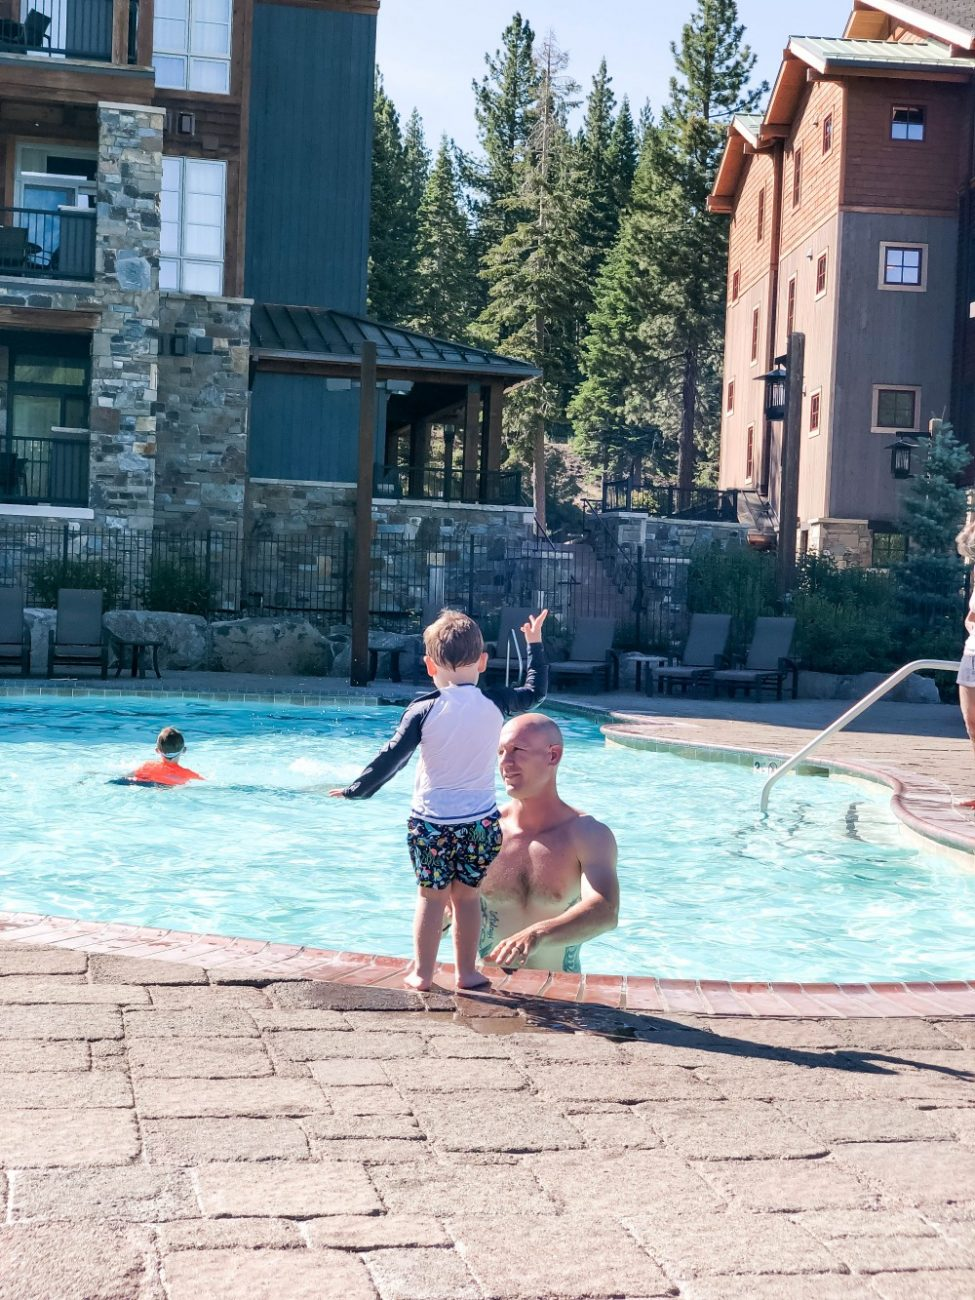 A review if Northstar Lodge a Welk Resort and a peak into our two bedroom suite that we had on our recent family vacation to North Lake Tahoe. Head on over to the post to check it out and learn how we saved over $150 on our reservation off the lowest price listed online for two nights. #hotelreview #northstarlodge #northstarresort #northlaketahoe #familyvacation #jifutravel